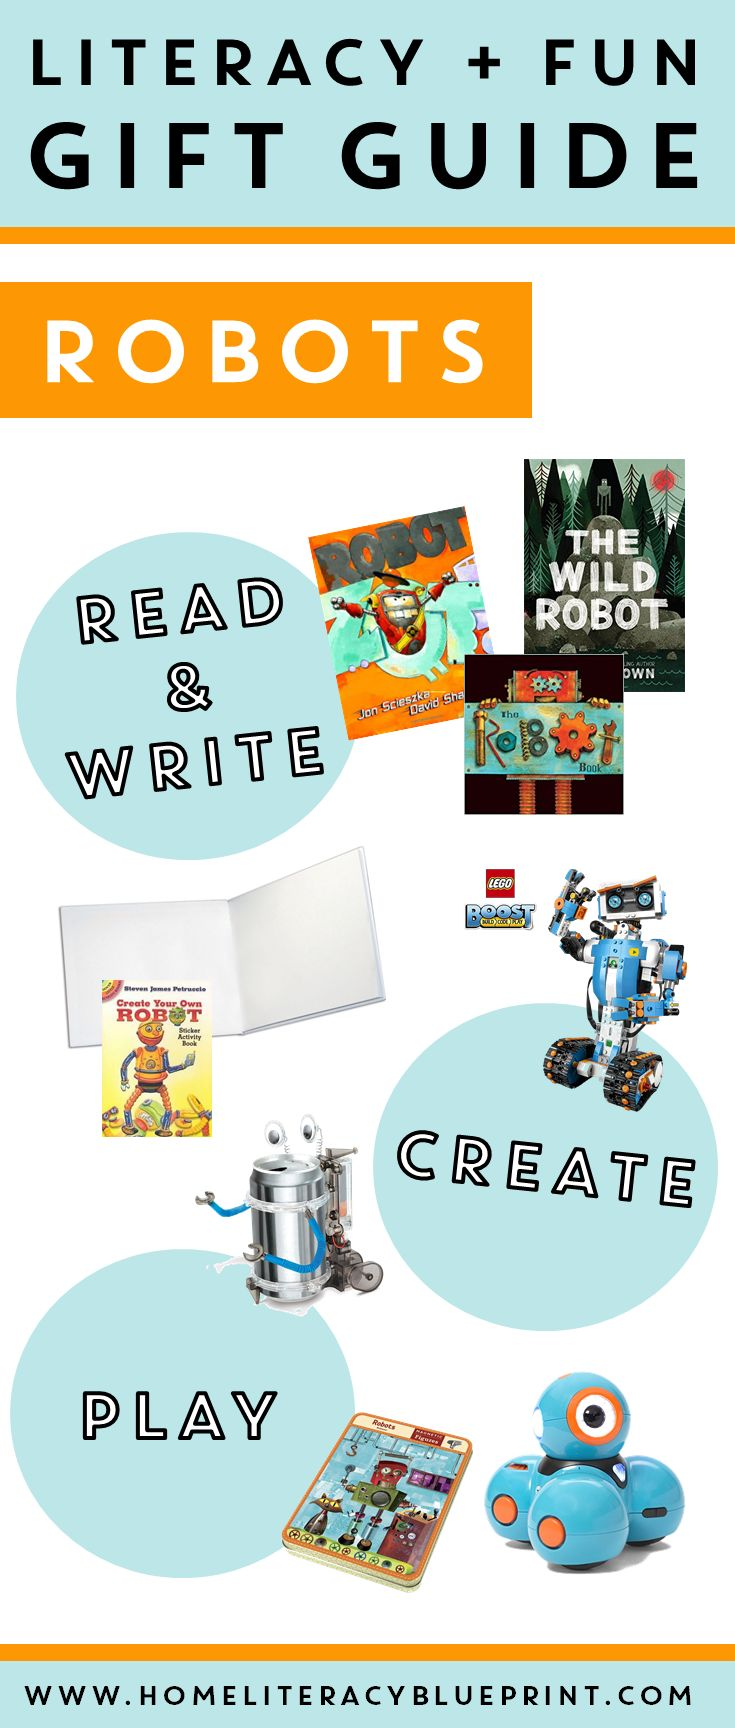 38 best Literacy Gifts for Kids images on Pinterest | Workshop ...